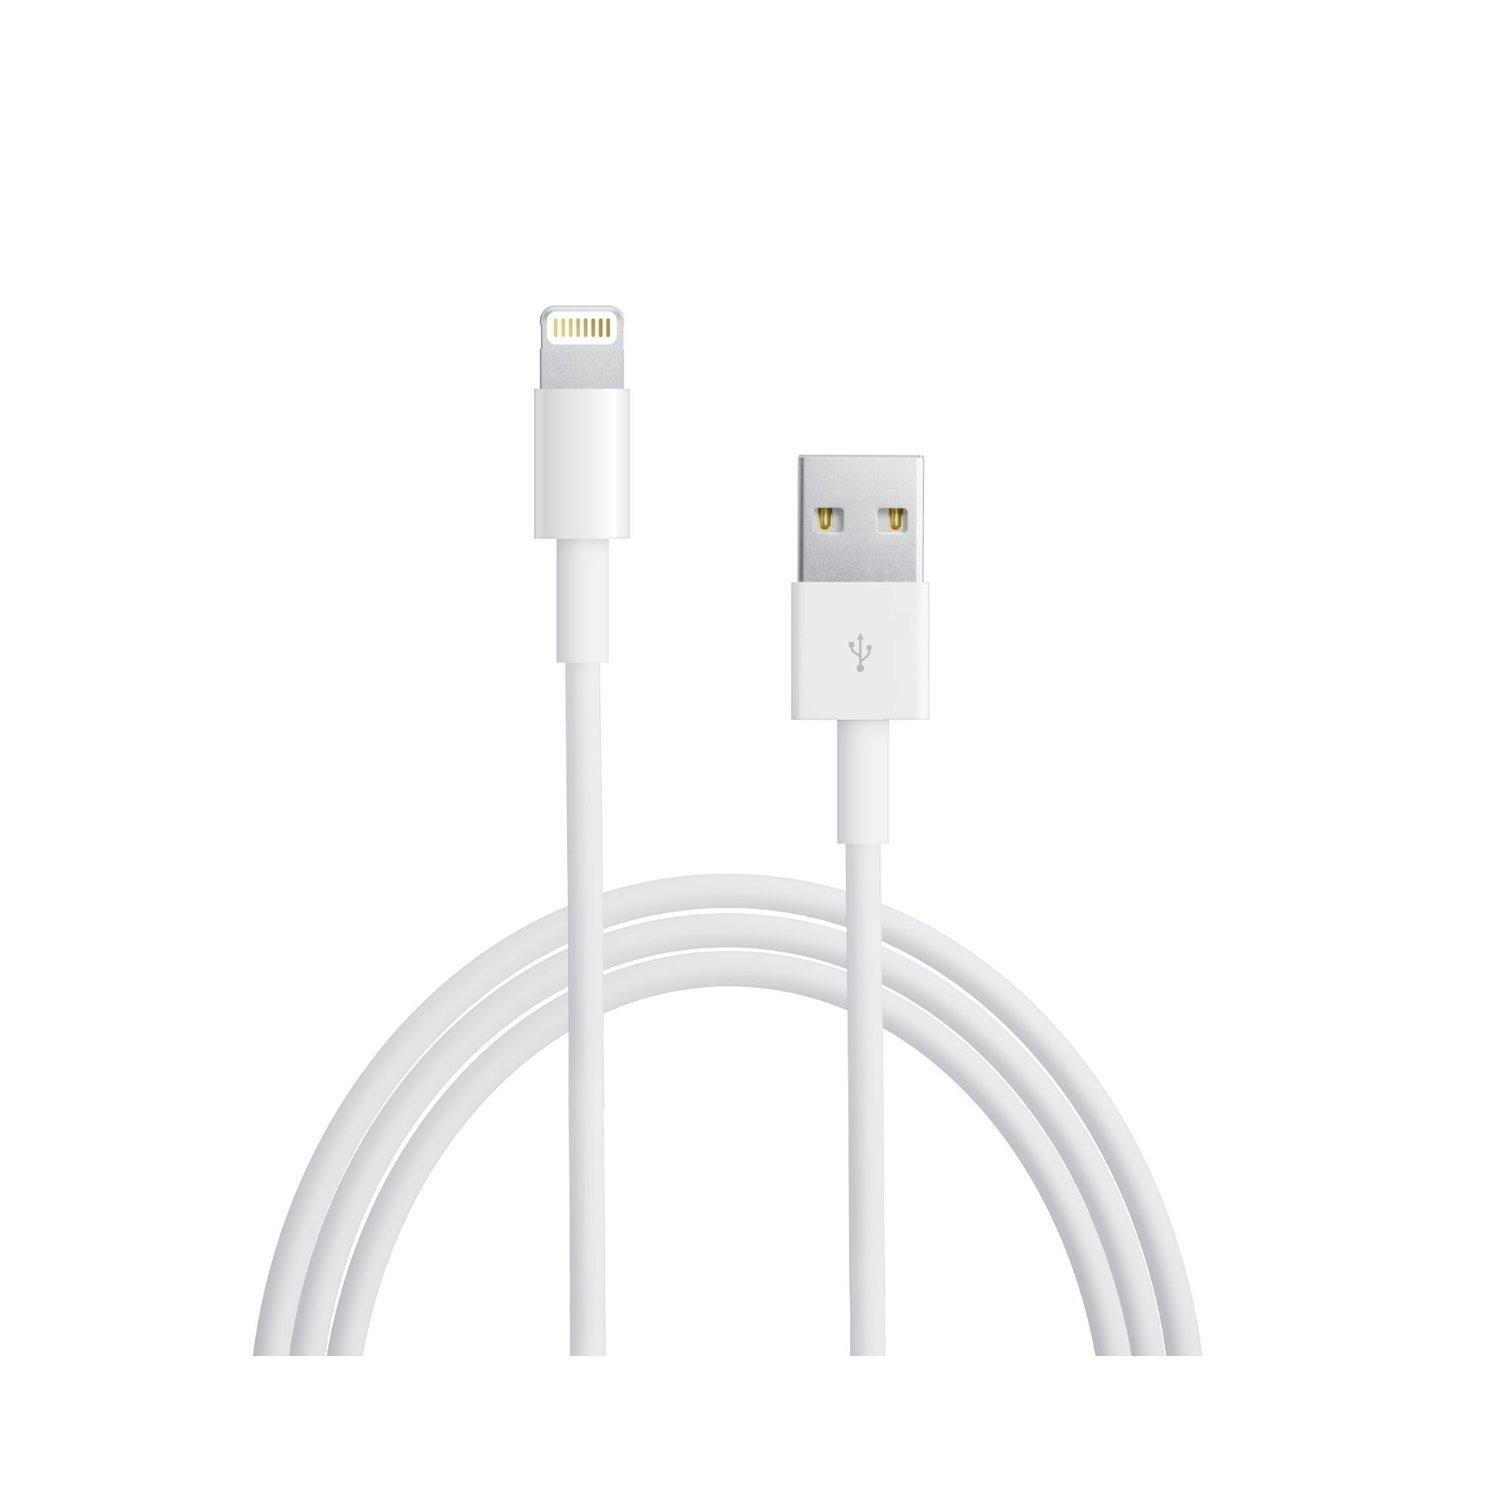 Lightning Cable - 3ft